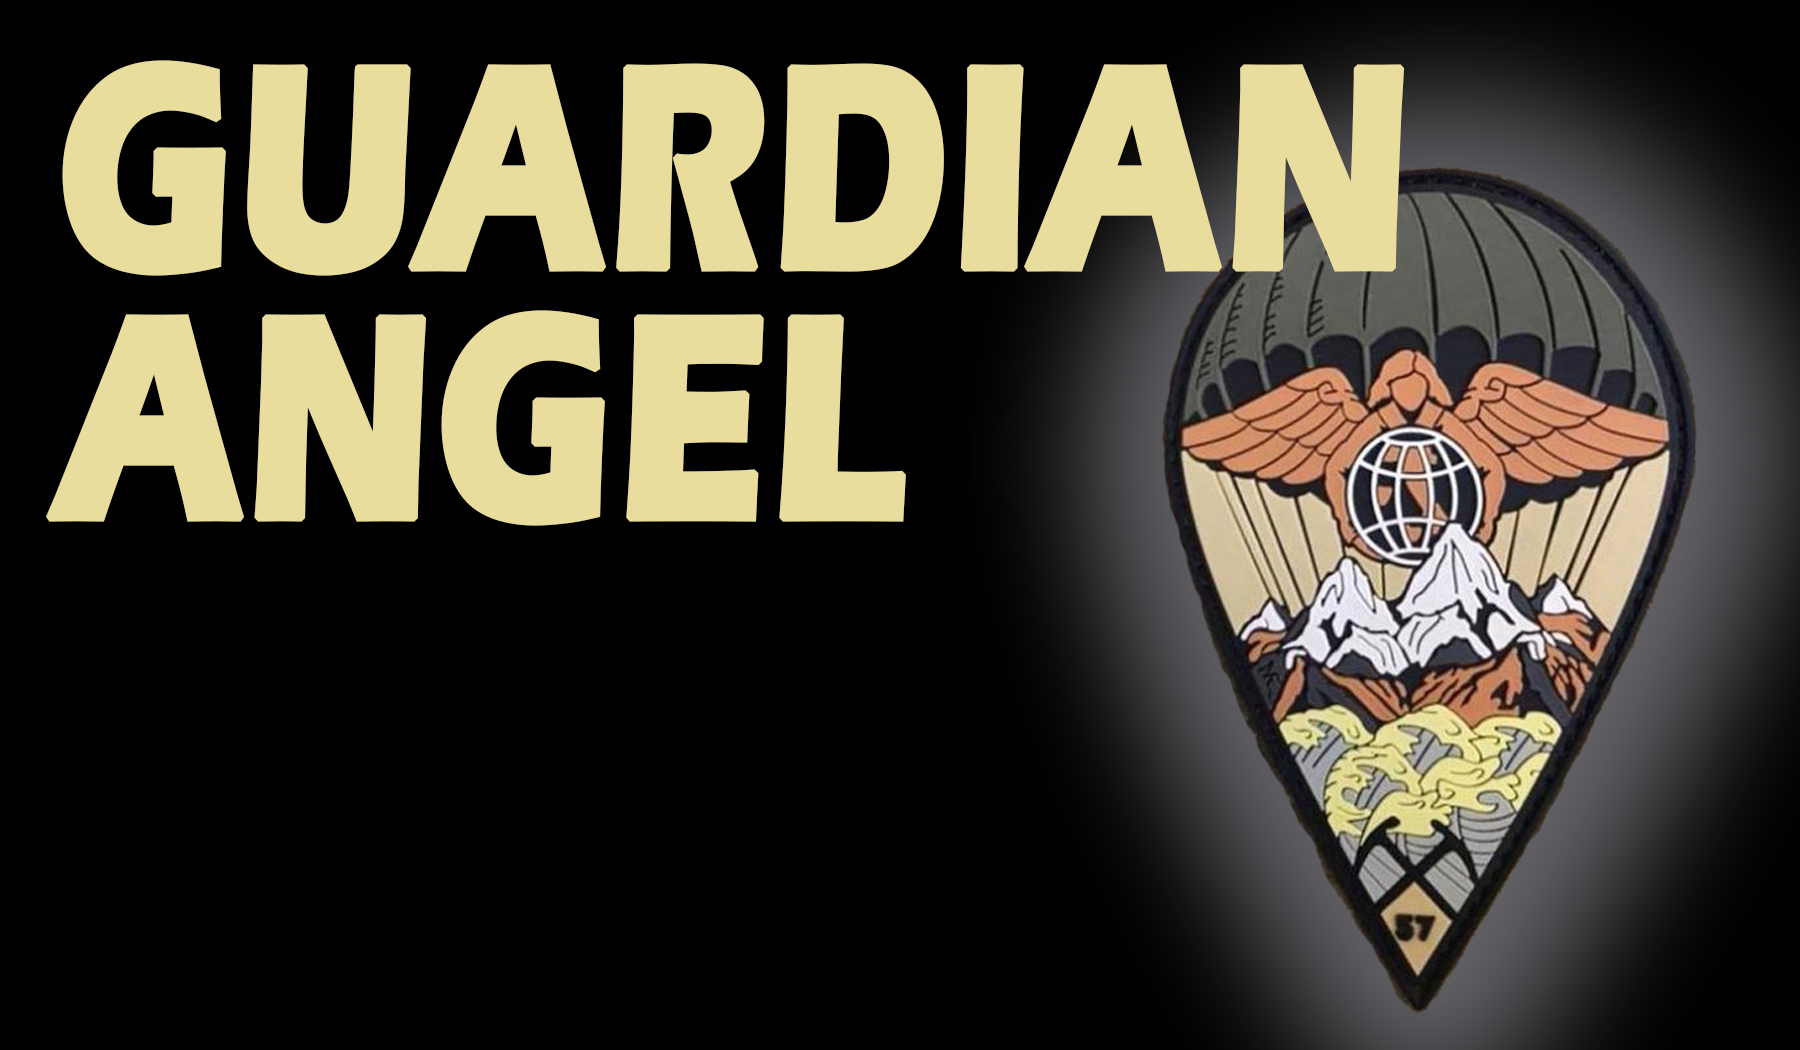 Guardian Angel Weapon System Fact Sheet